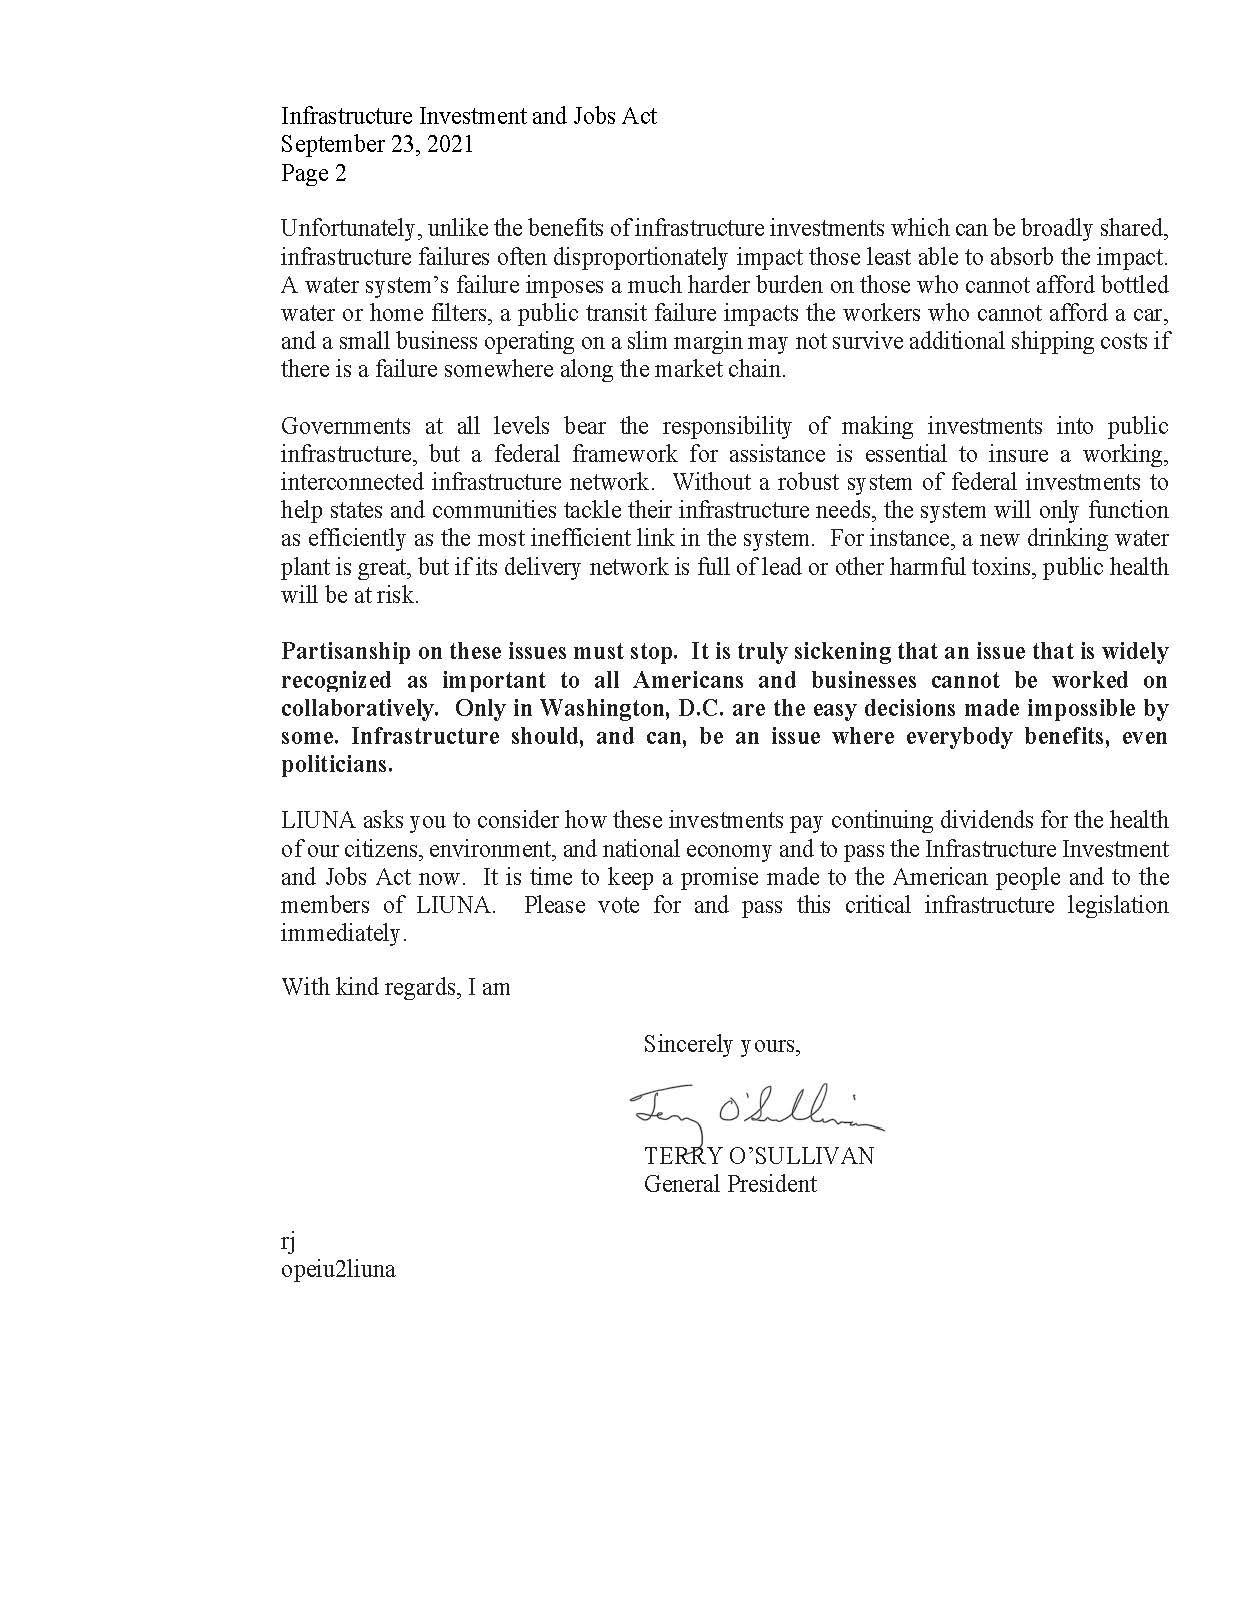 Infrastructure Investment & Jobs Act Ltr to House Sept 23 2021 (1)_Page_2.jpg